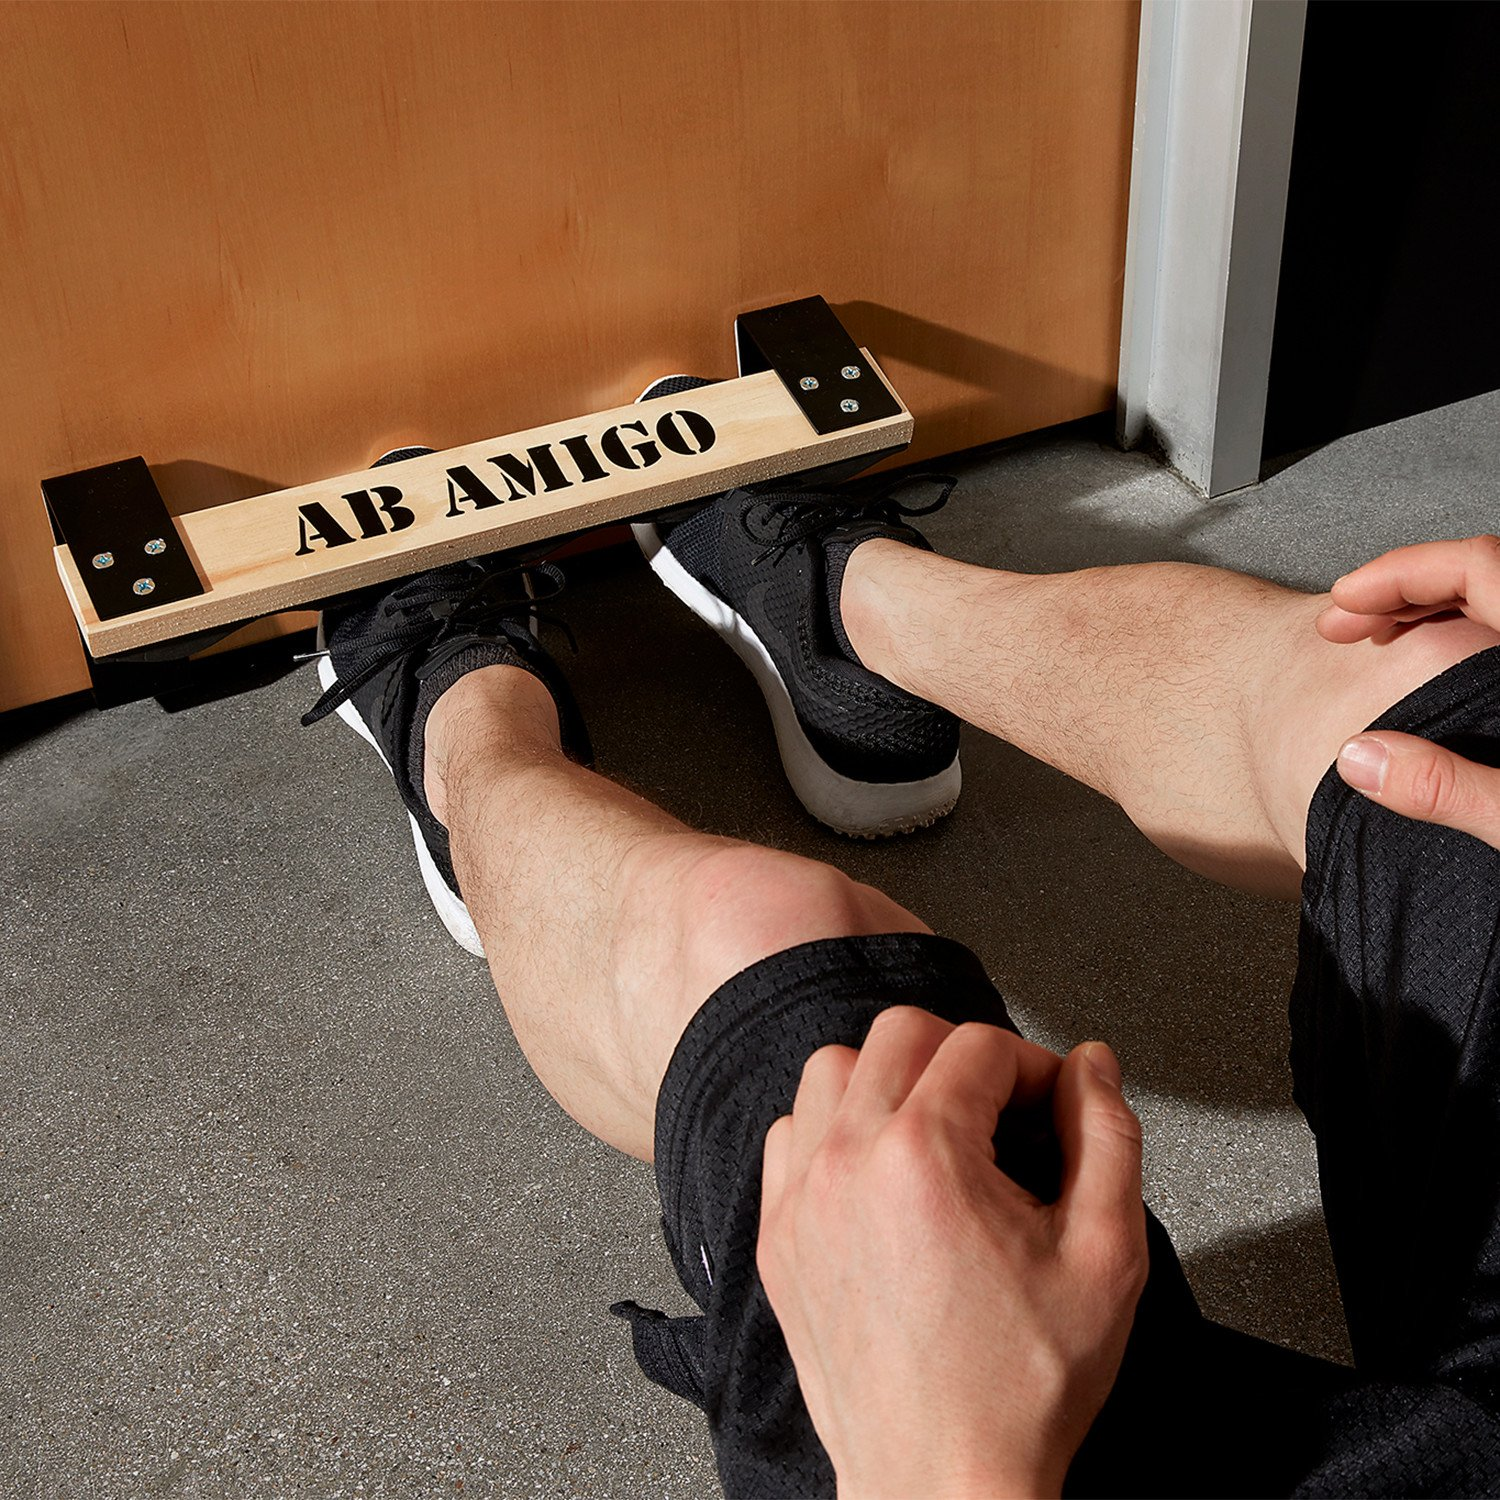 Ab Amigo Doorway Sit-Up Exercise Equipment That Auto-Corrects Your Form